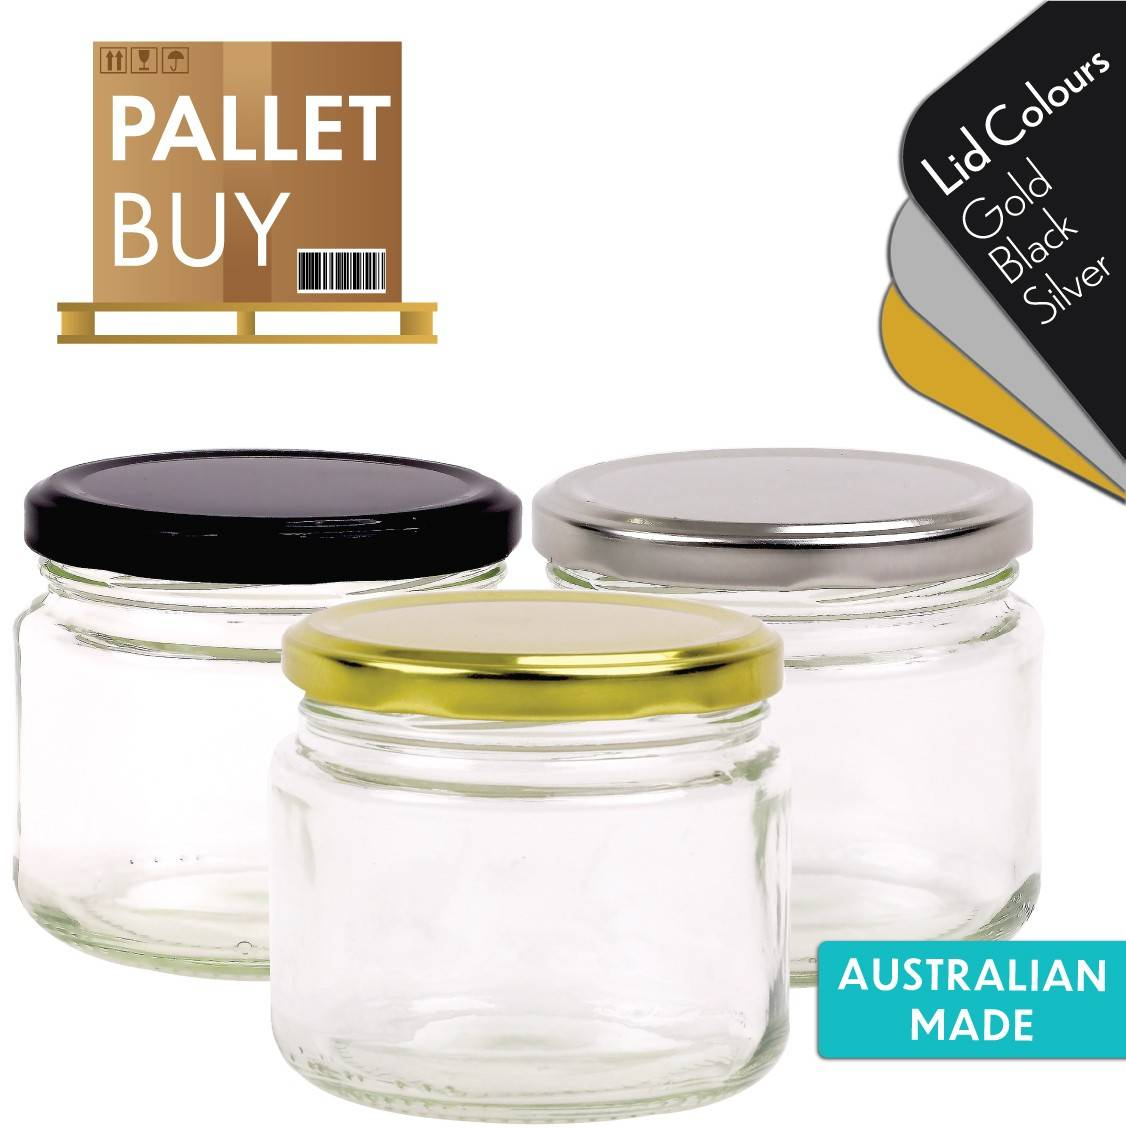 Pallet of 2730 Round Glass Jars - 300ml / 420g size - with Lids. Australian Made. GST Incl.